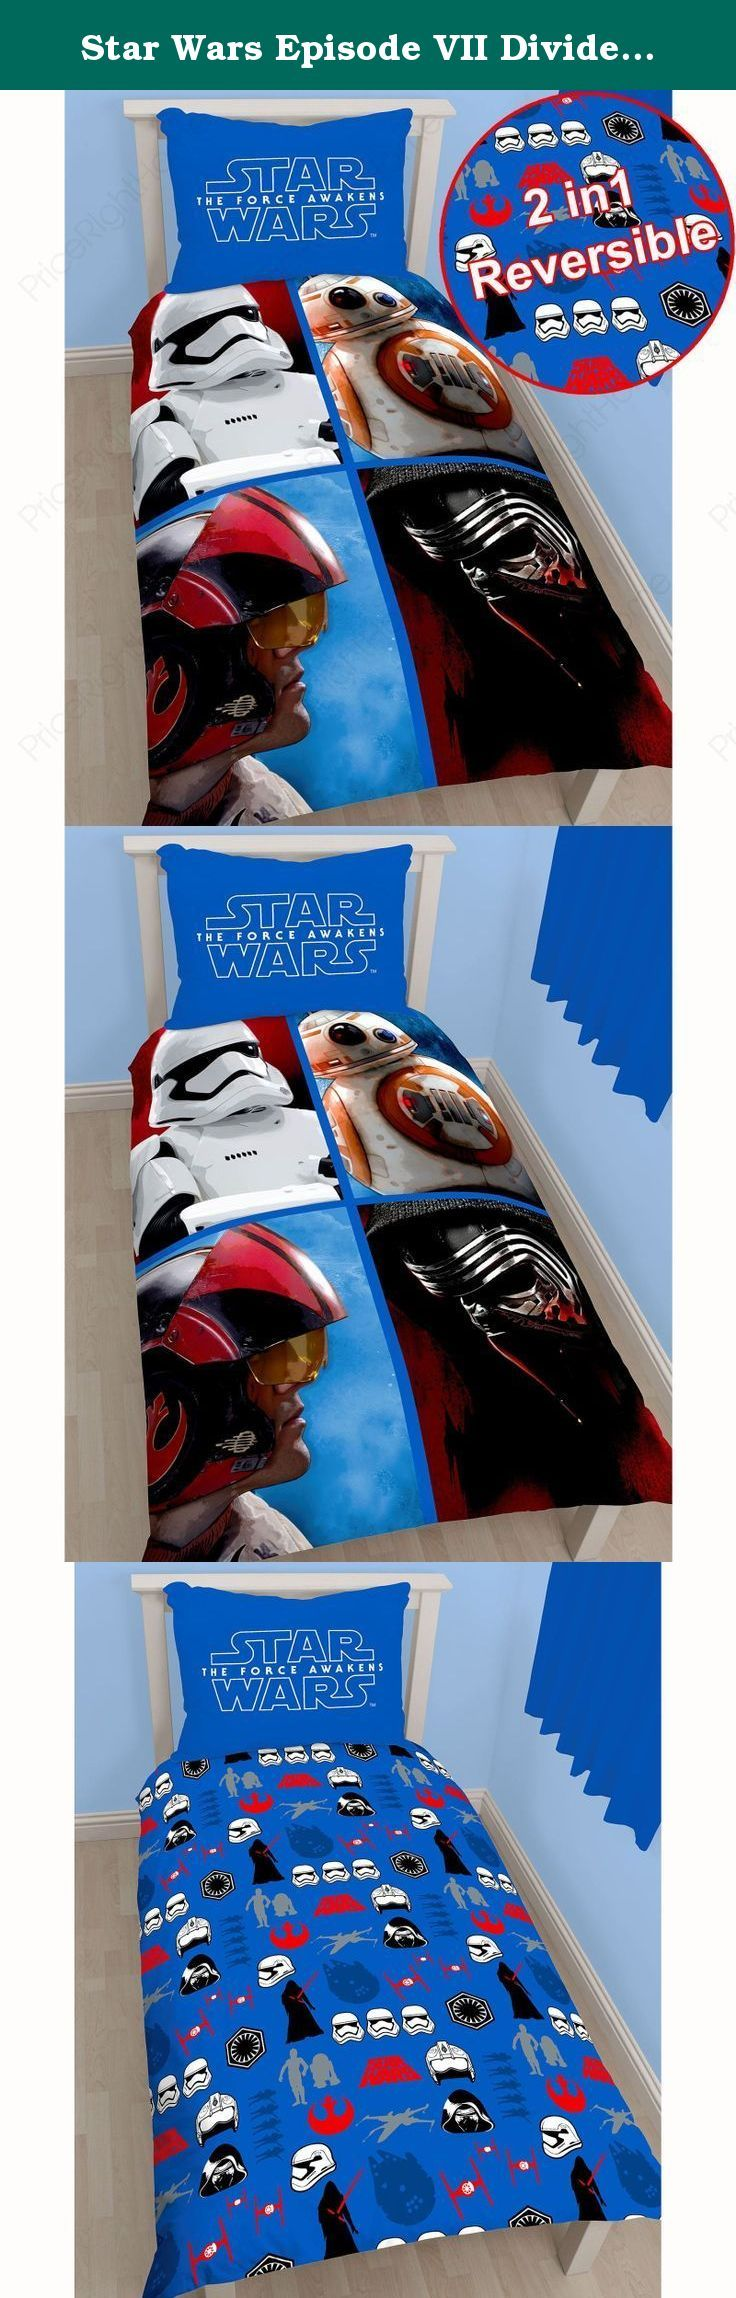 Star Wars Episode VII Divider UK Single/ US Twin Duvet Cover and Pillowcase Set. Official Star Wars Episode VII merchandise Features Kylo Ren, a Stormtrooper, Poe Dameron and BB-8 Reversible - 2 designs in 1 Duvet Cover size: 135cm x 200cm (53in x 78in) Pillowcase size: 48cm x 74cm (19in x 29in) 50% Cotton, 50% Polyester Machine washable To fit single bed 90cm x 190cm (36in x 75in) Main colour: Blue Please note: Comforter and pillow not included The Force is strong with this awesome Star...